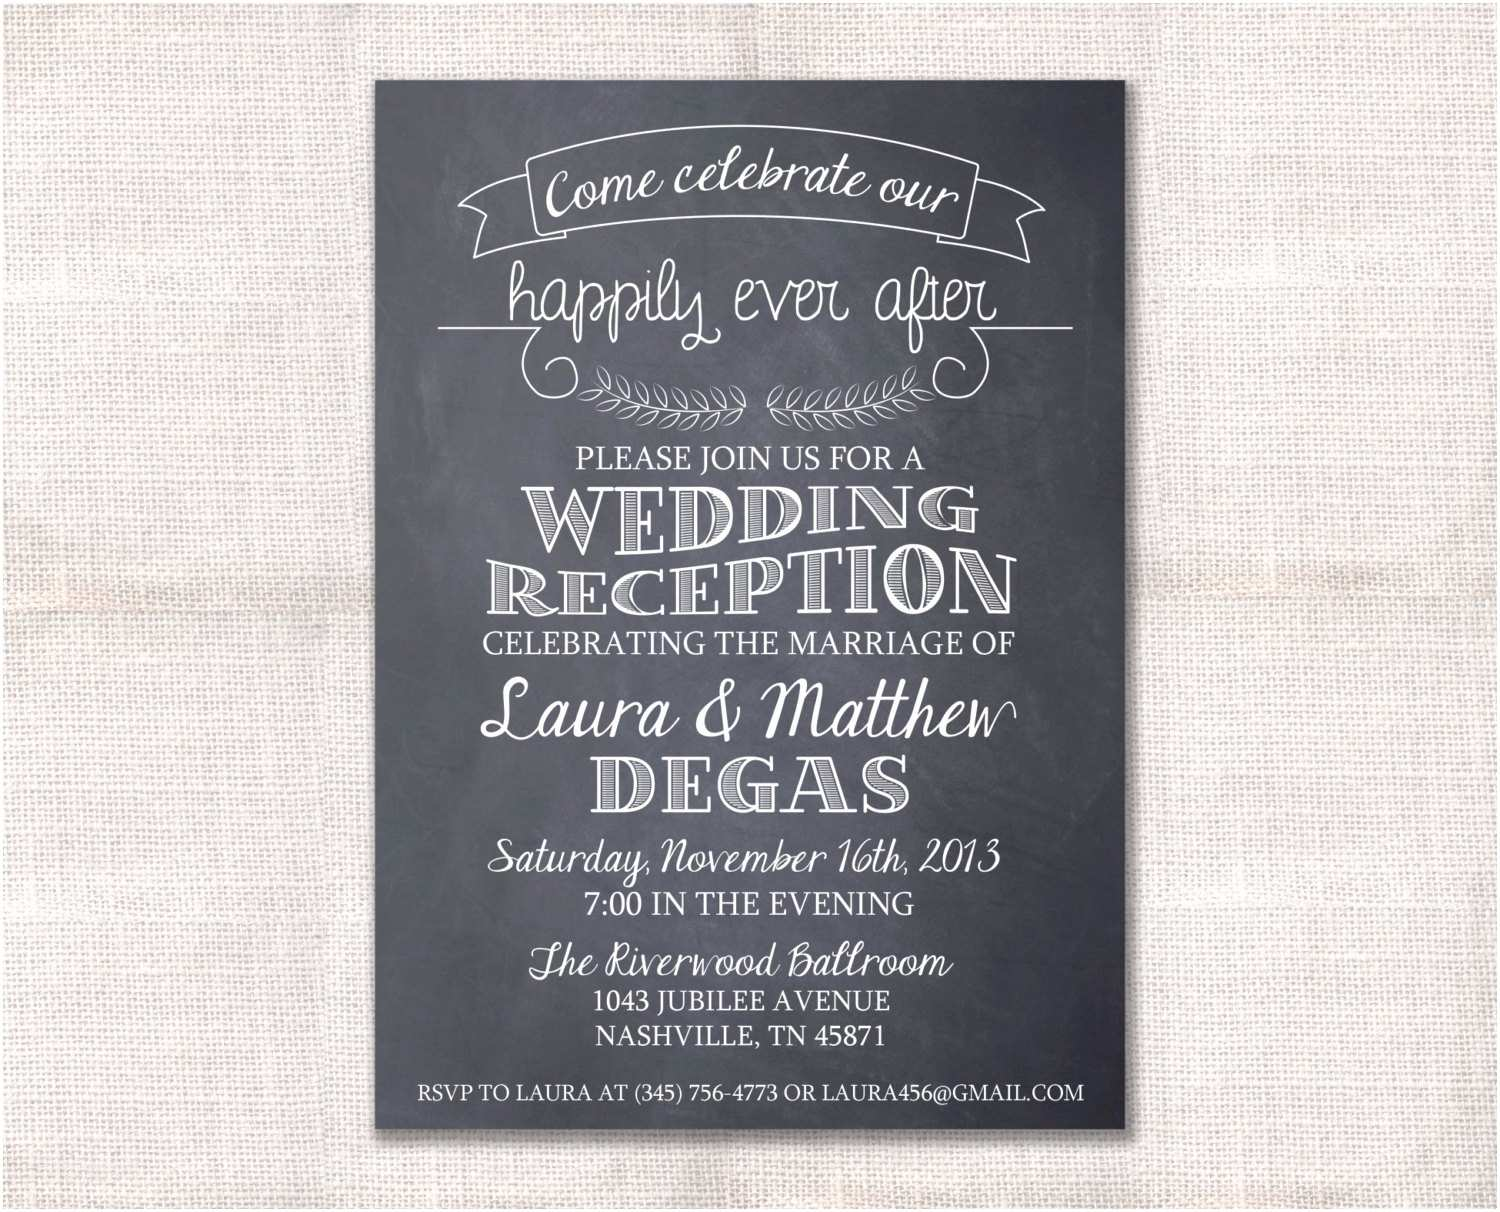 Wedding Reception Invitations Wedding Reception Celebration after Party Invitation Custom